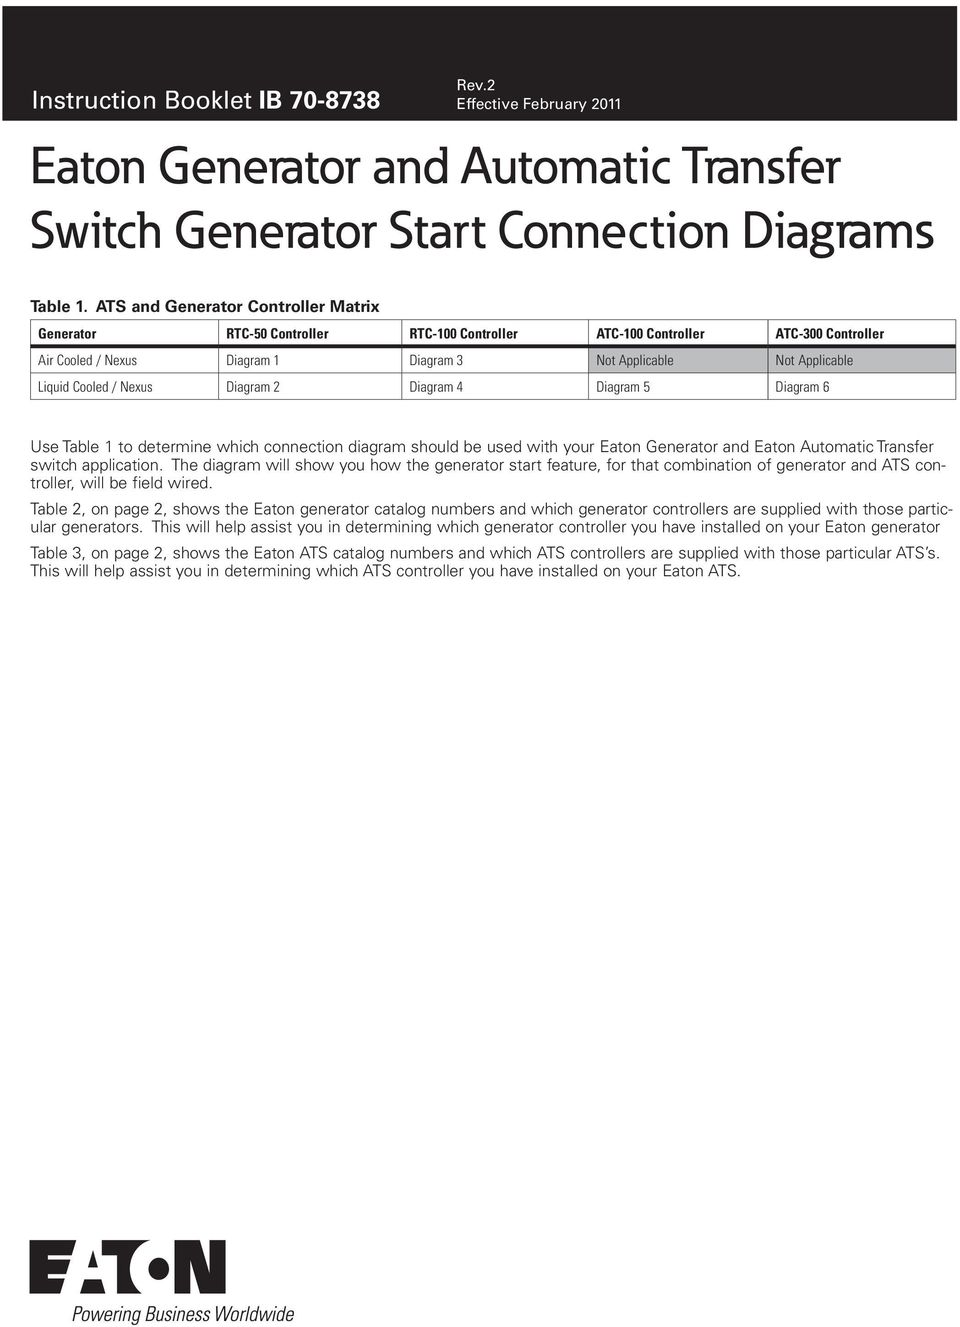 Eaton Generator And Automatic Transfer Switch Start Pull Out Wiring Diagram Cooled Nexus 2 4 5 6 Use Table 1 To Determine